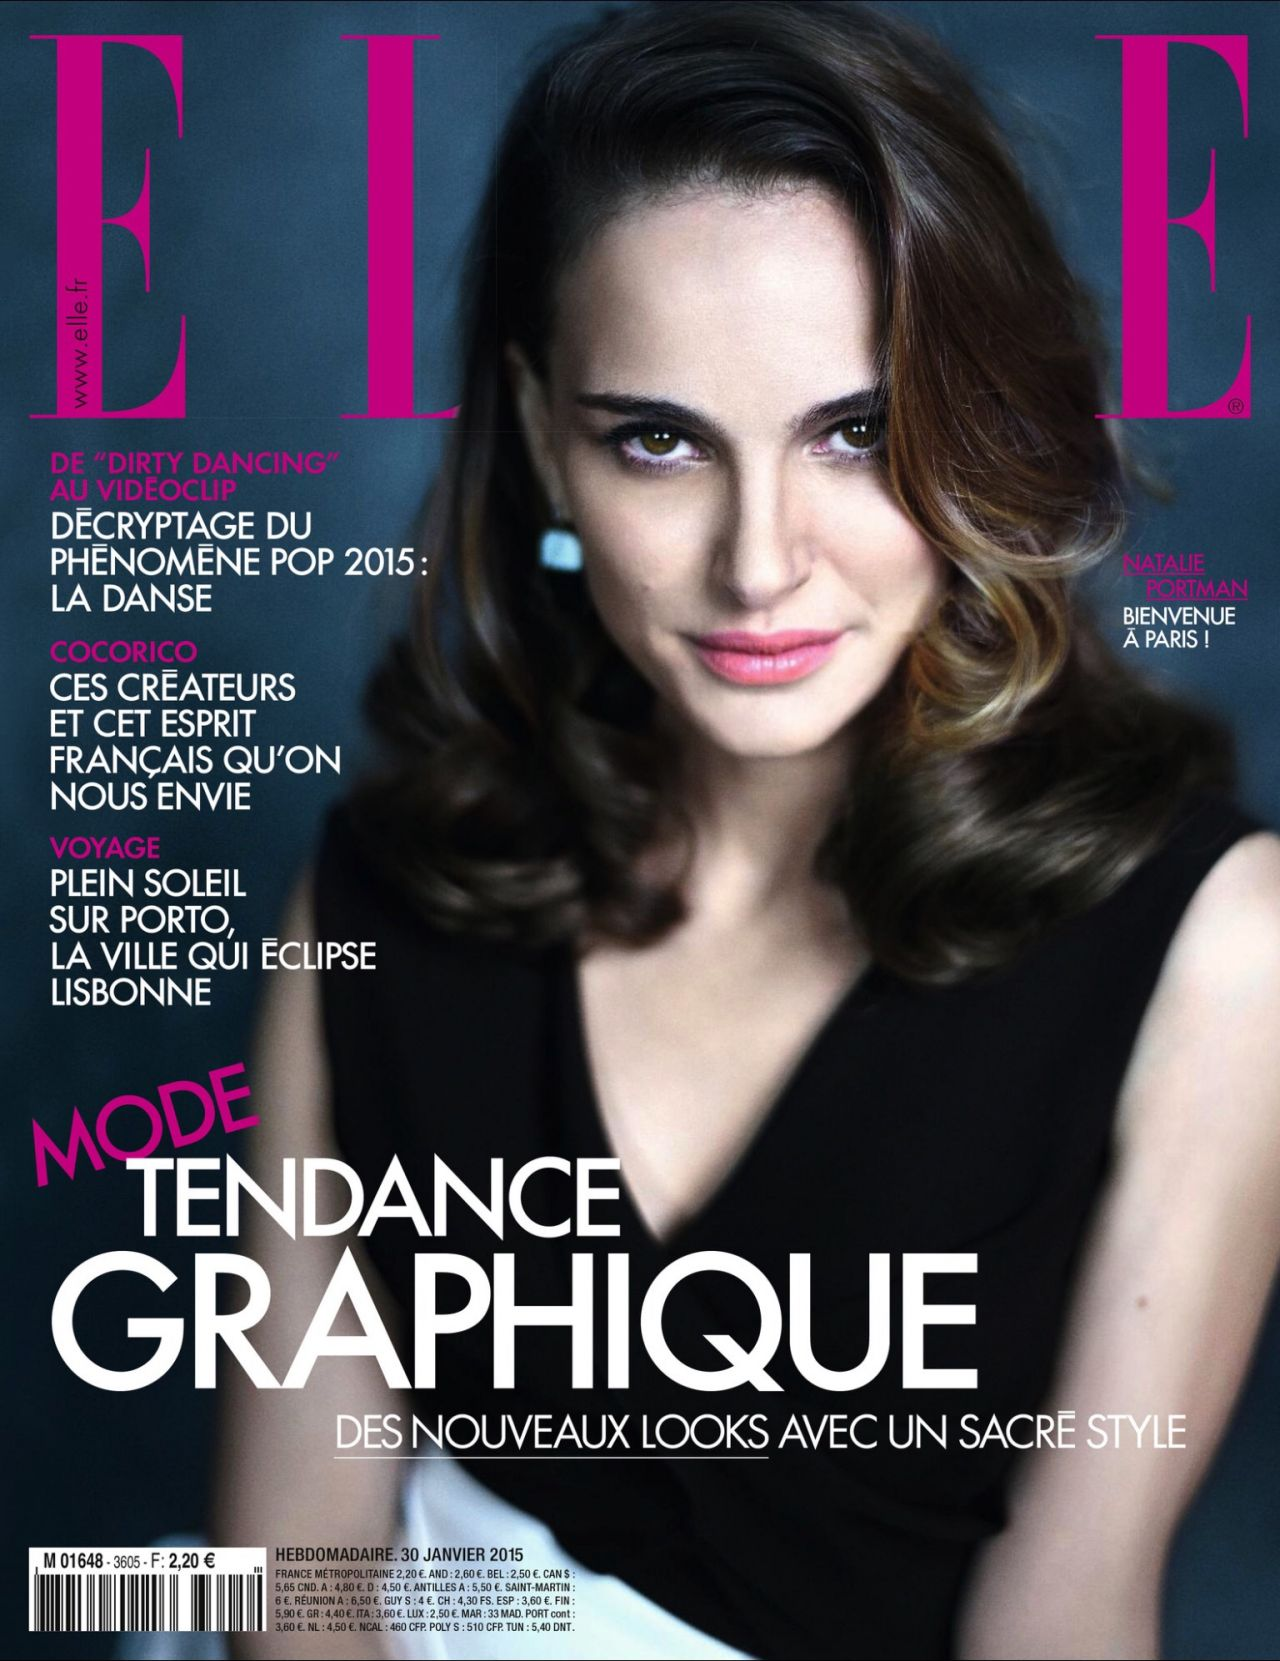 Elle Magazine France February March: Elle Magazine (France) February/March